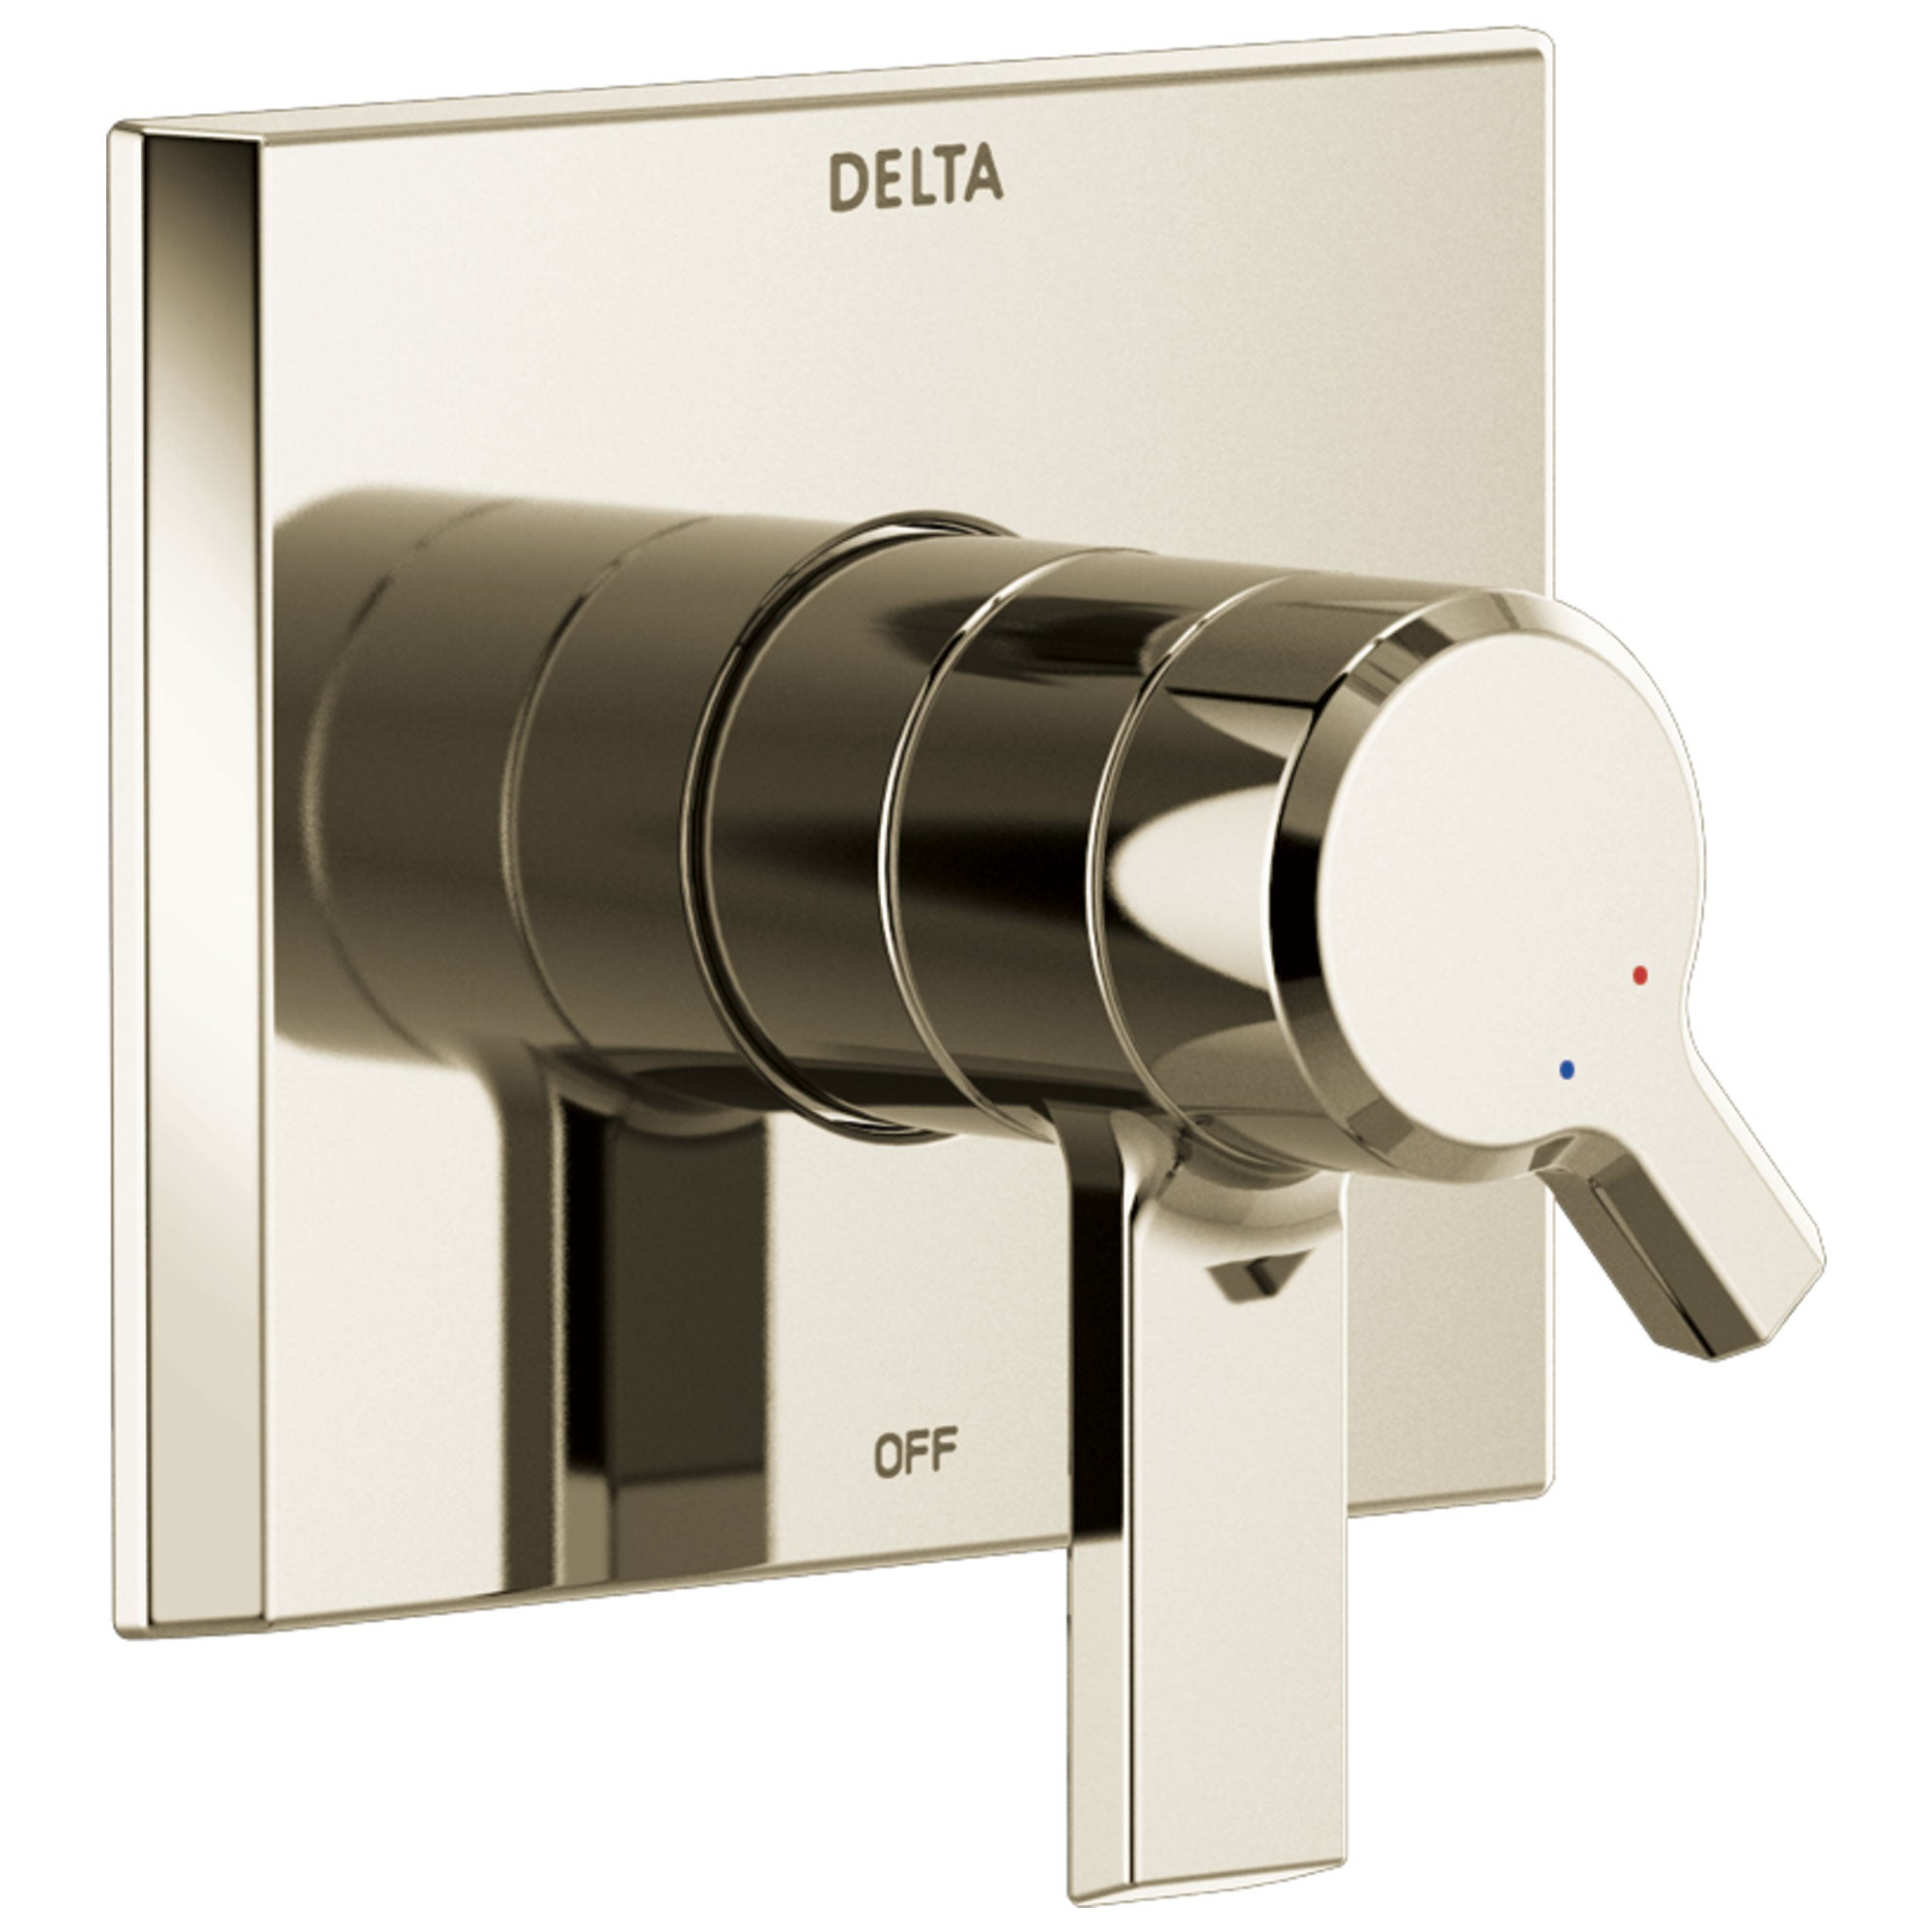 Delta Pivotal Modern Polished Nickel Finish Monitor 17 Series Shower Faucet Control Includes Handles, Cartridge, and Valve without Stops D3393V